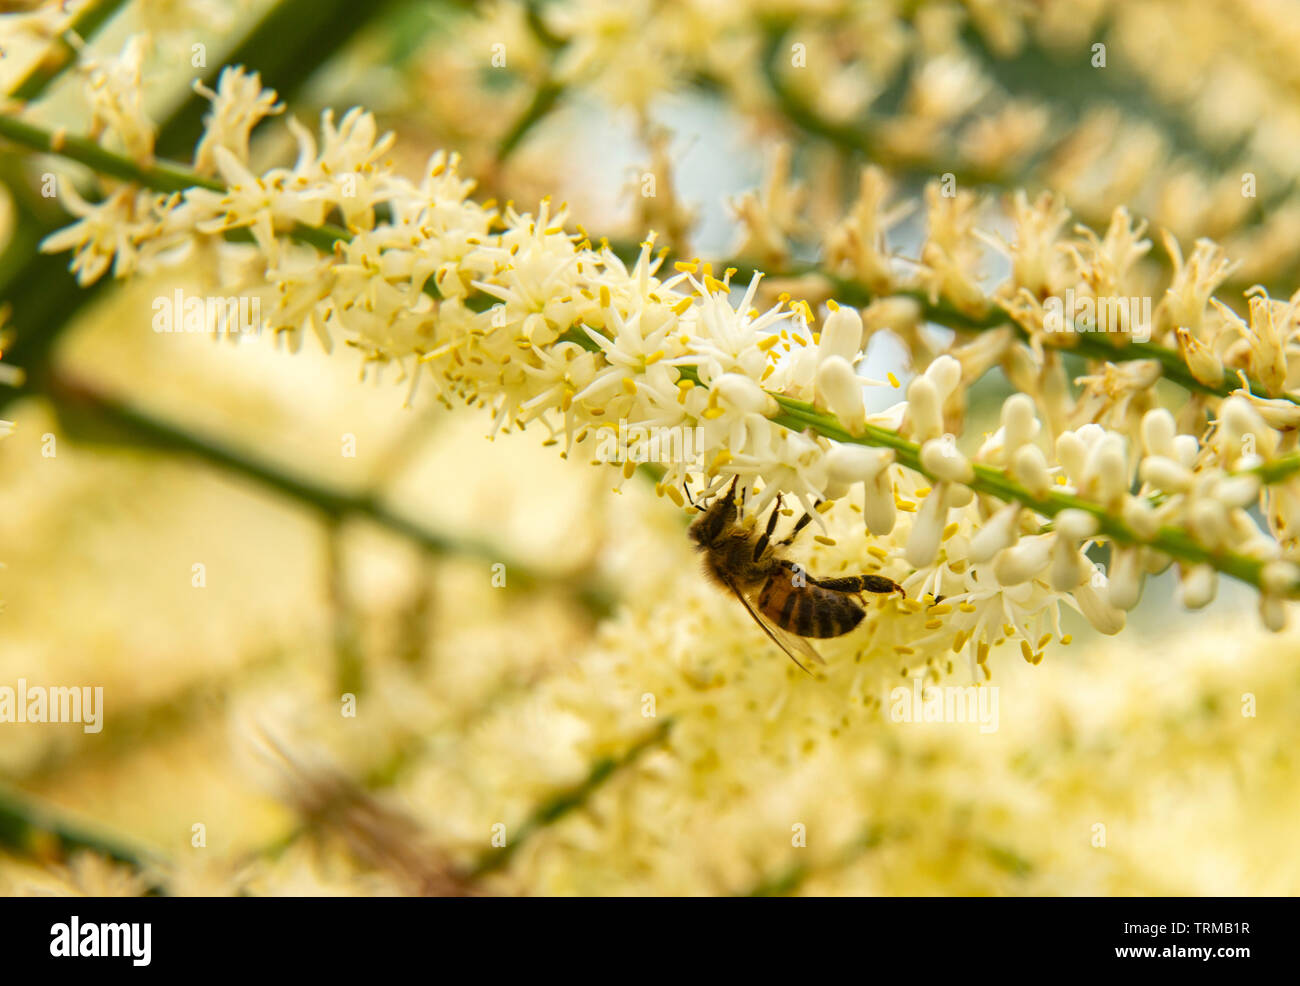 A hover fly feasts on the nectar and pollen from the panicle flowers of cordyline australis, in a Devon garden. - Stock Image